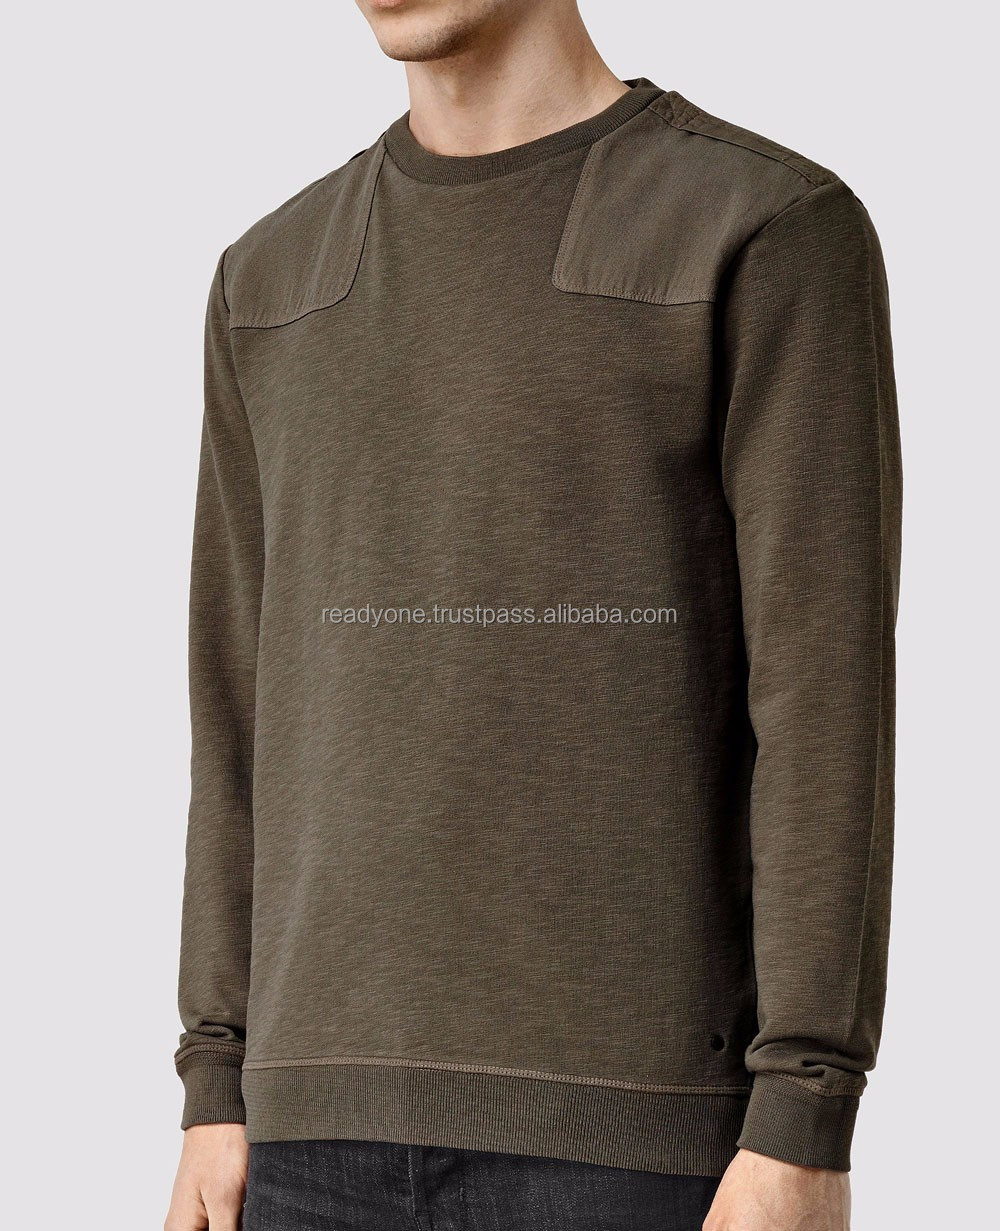 sweat shirt for men custom long sleeve